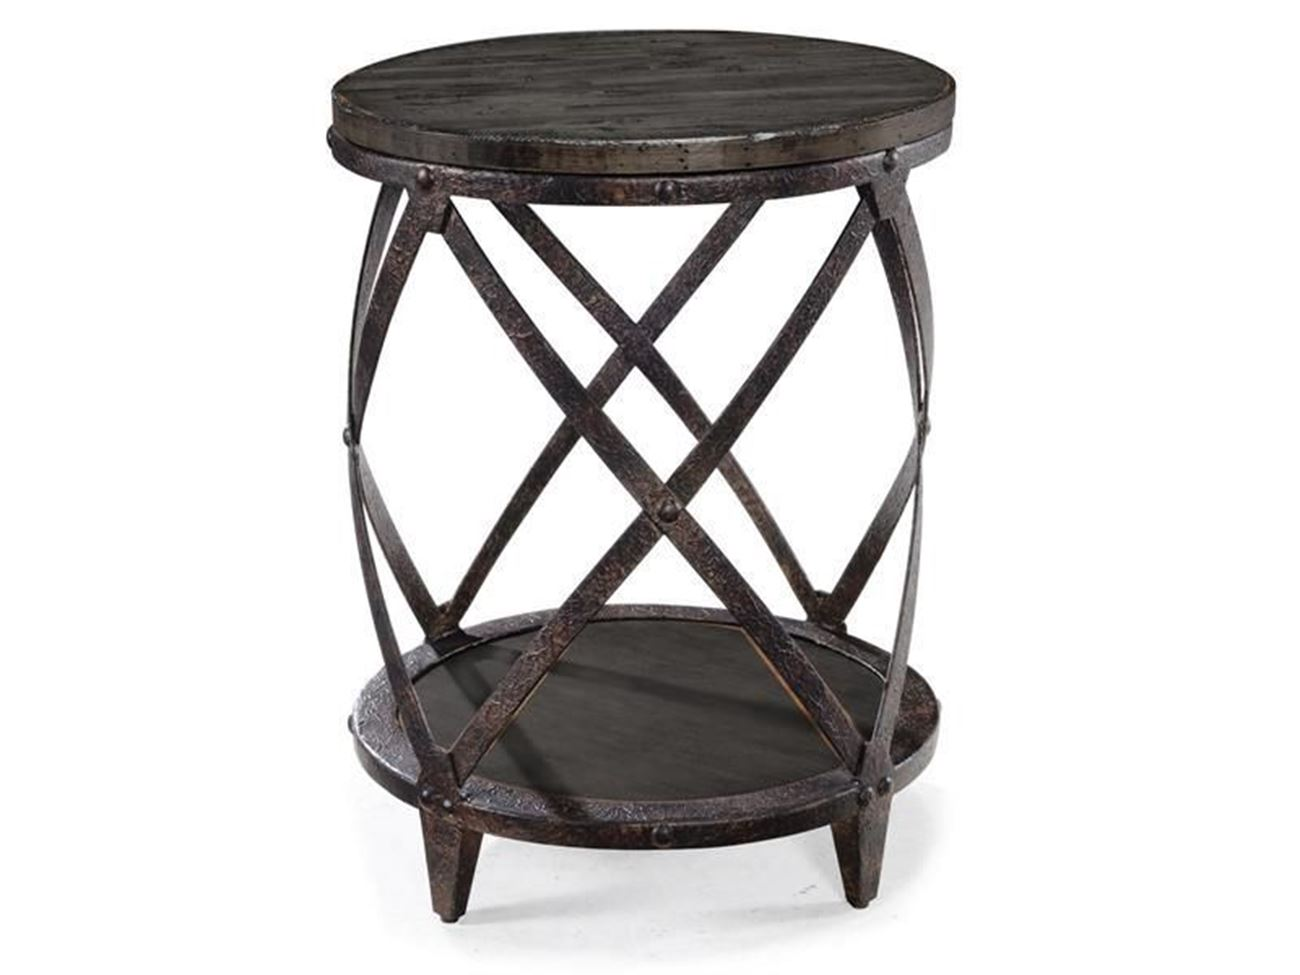 milford round accent table woodstock furniture mattress ture drawer cabinet roberts heaters aluminum patio kids bedroom sets rattan outdoor clearance ikea storage baskets